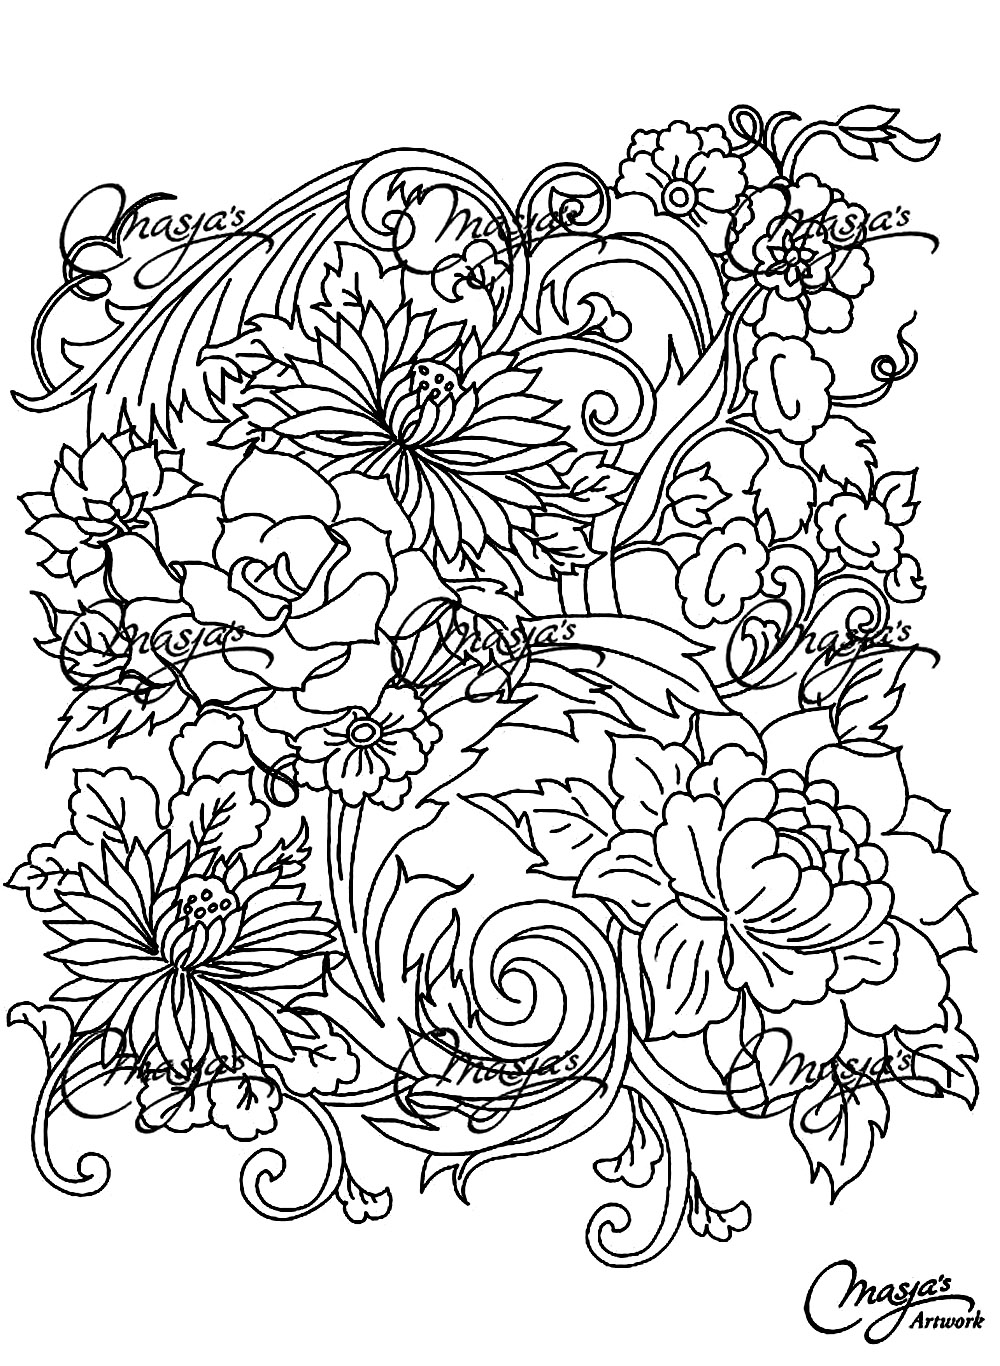 coloring flowers for adults 7 floral adult coloring pages the graphics fairy adults flowers coloring for